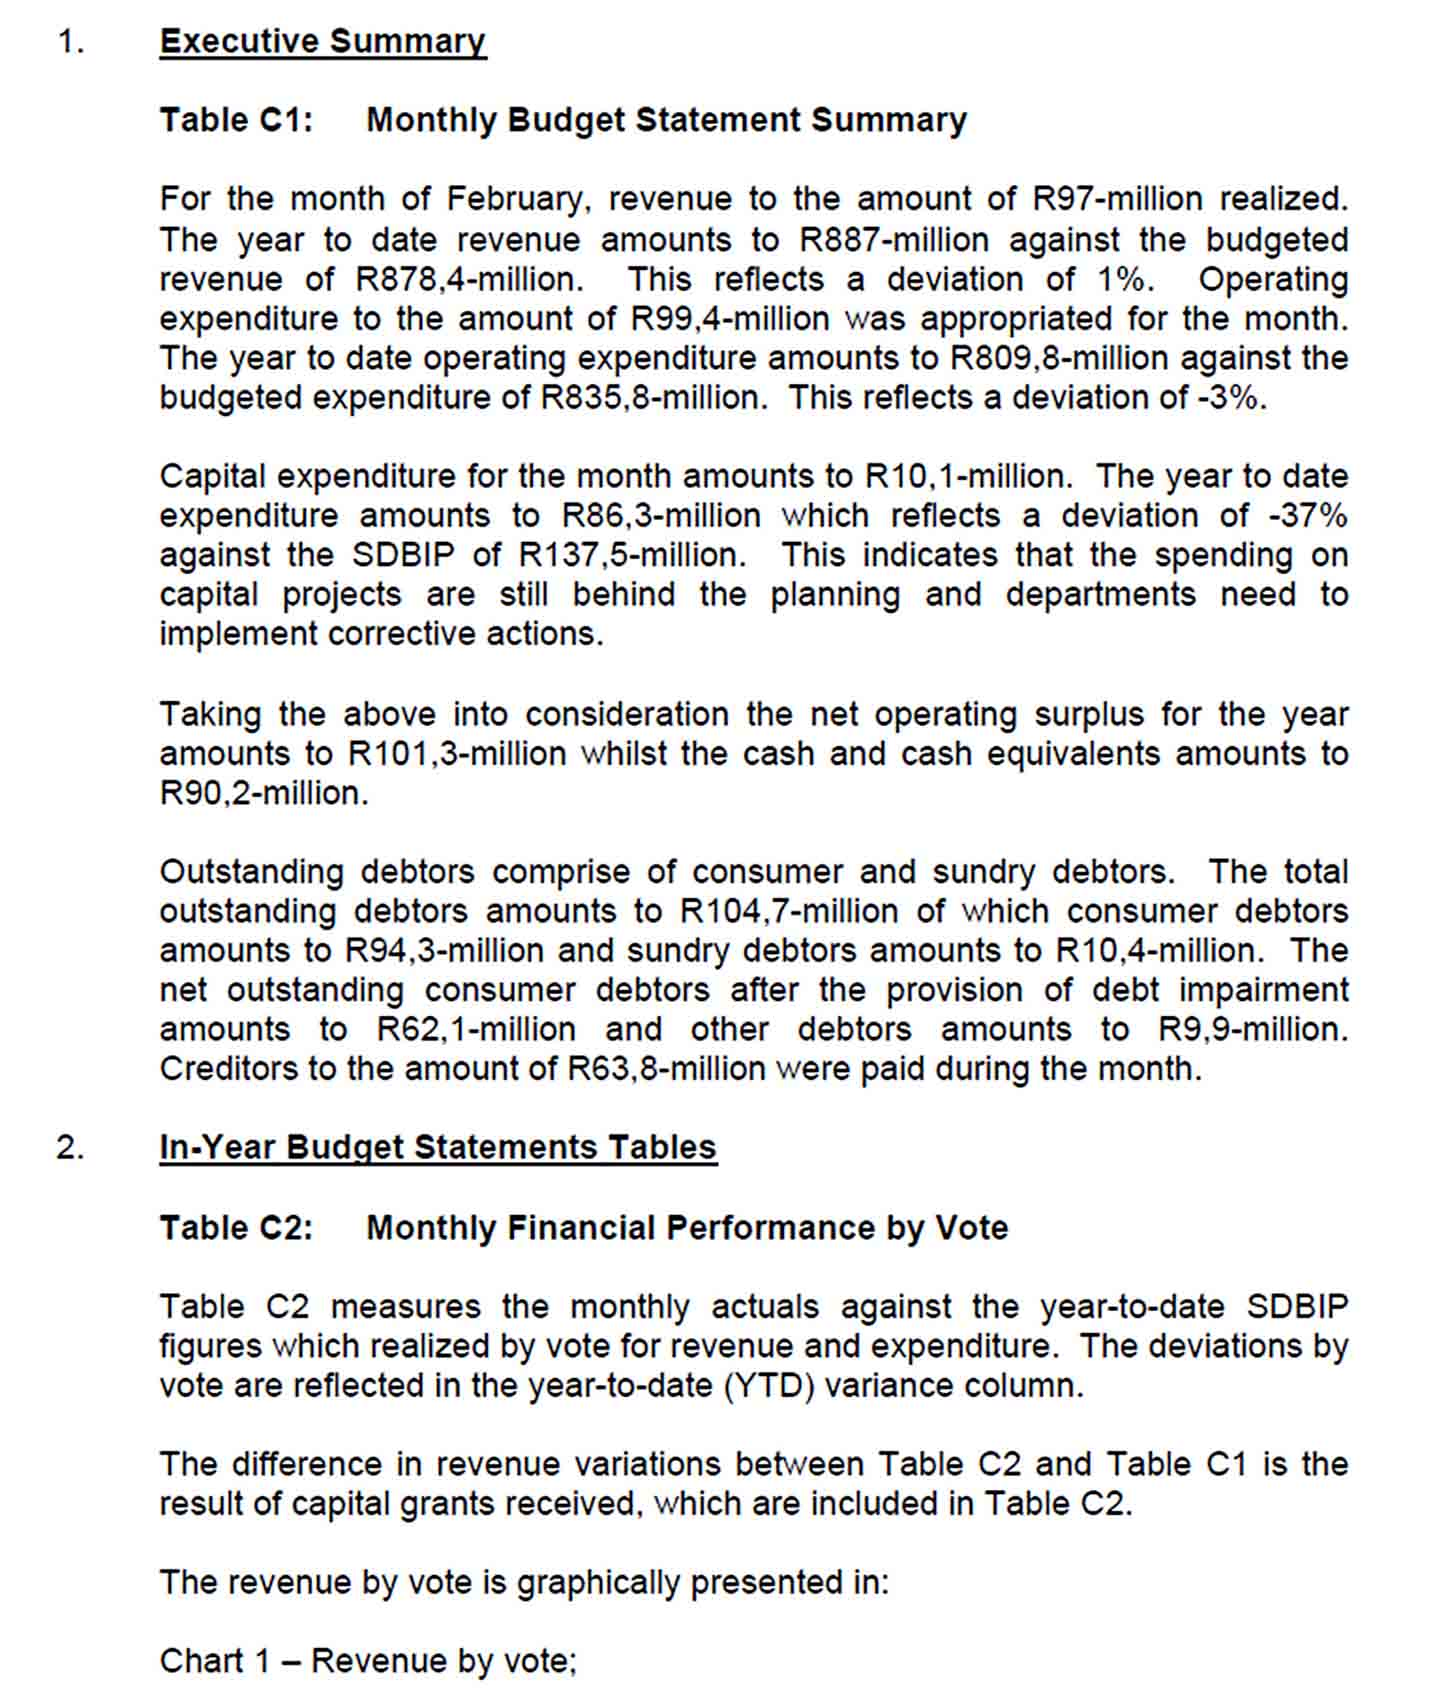 Monthly Budget Statement Report sample